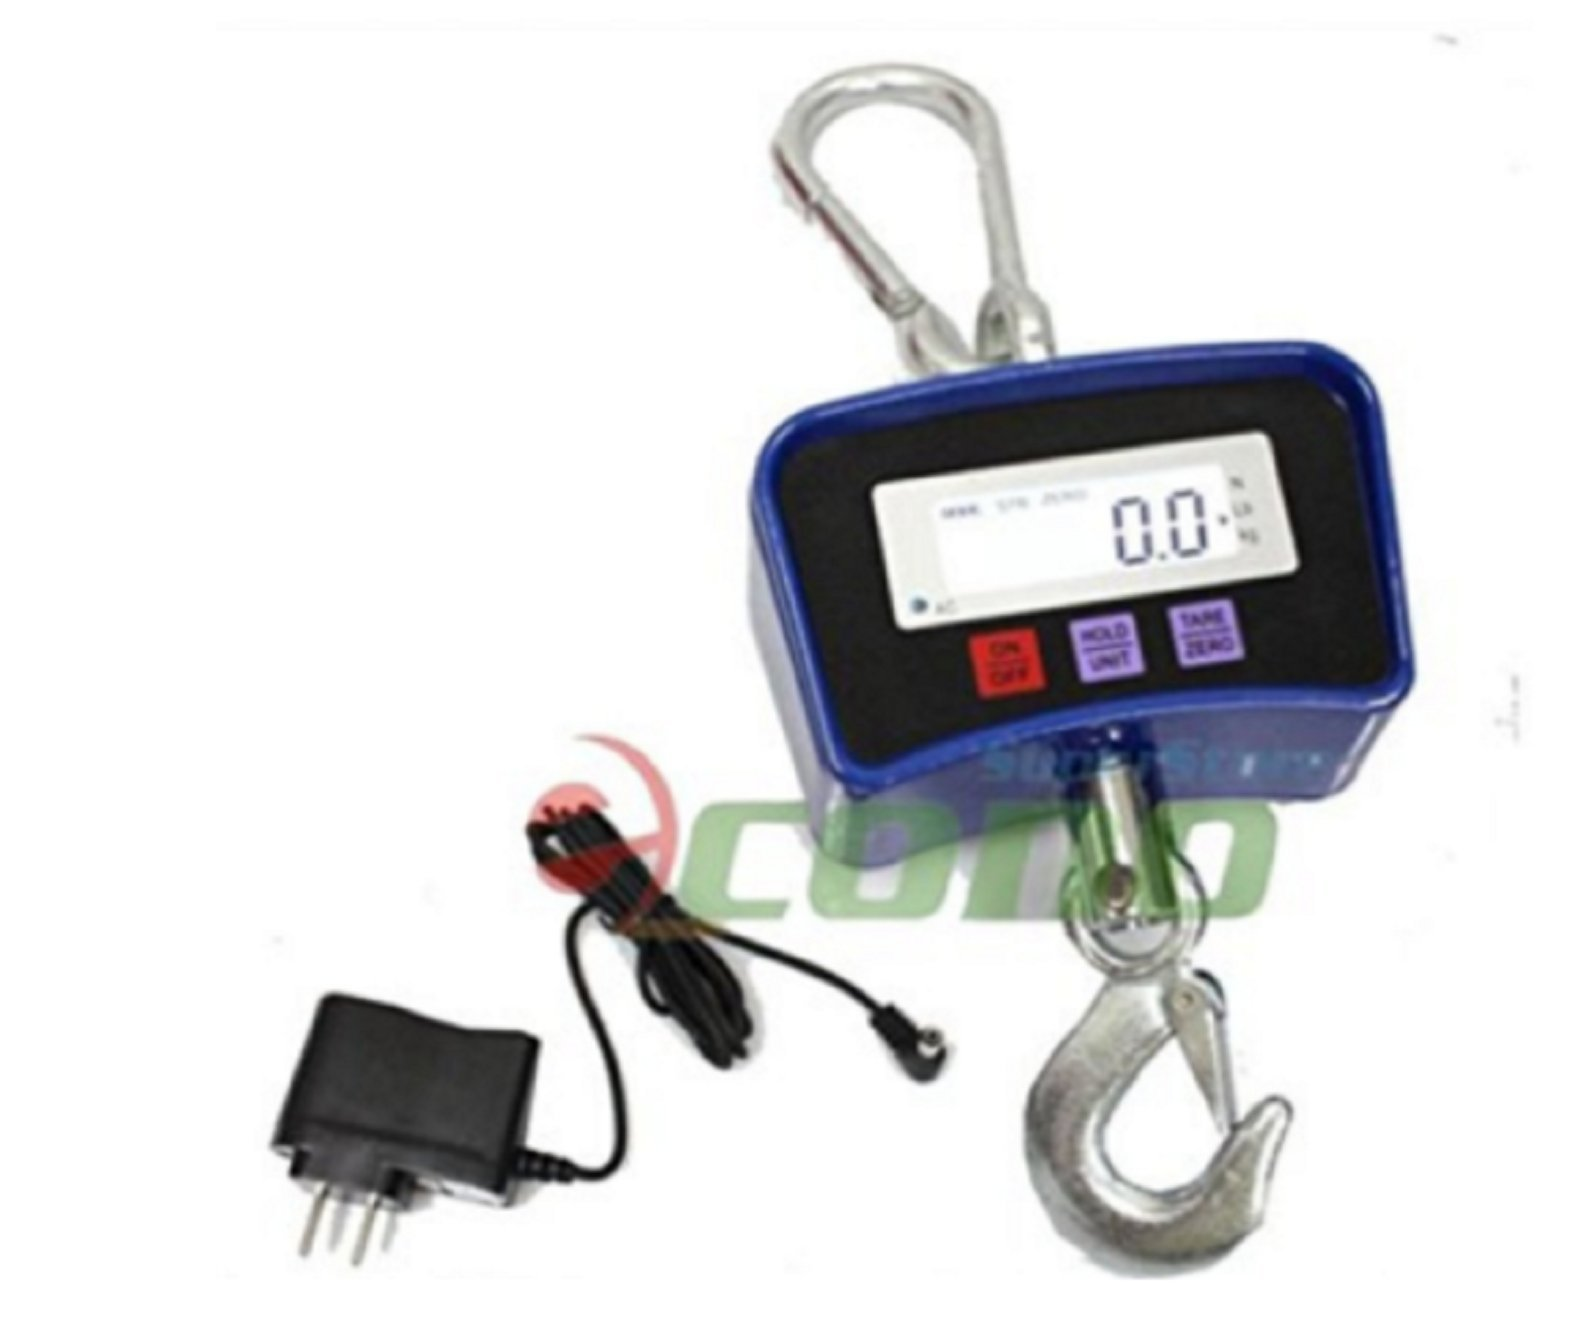 USA Premium Store Digital Crane Hanging Scale 500KG 1100LBS Heavy Duty Industrial w/LED Display